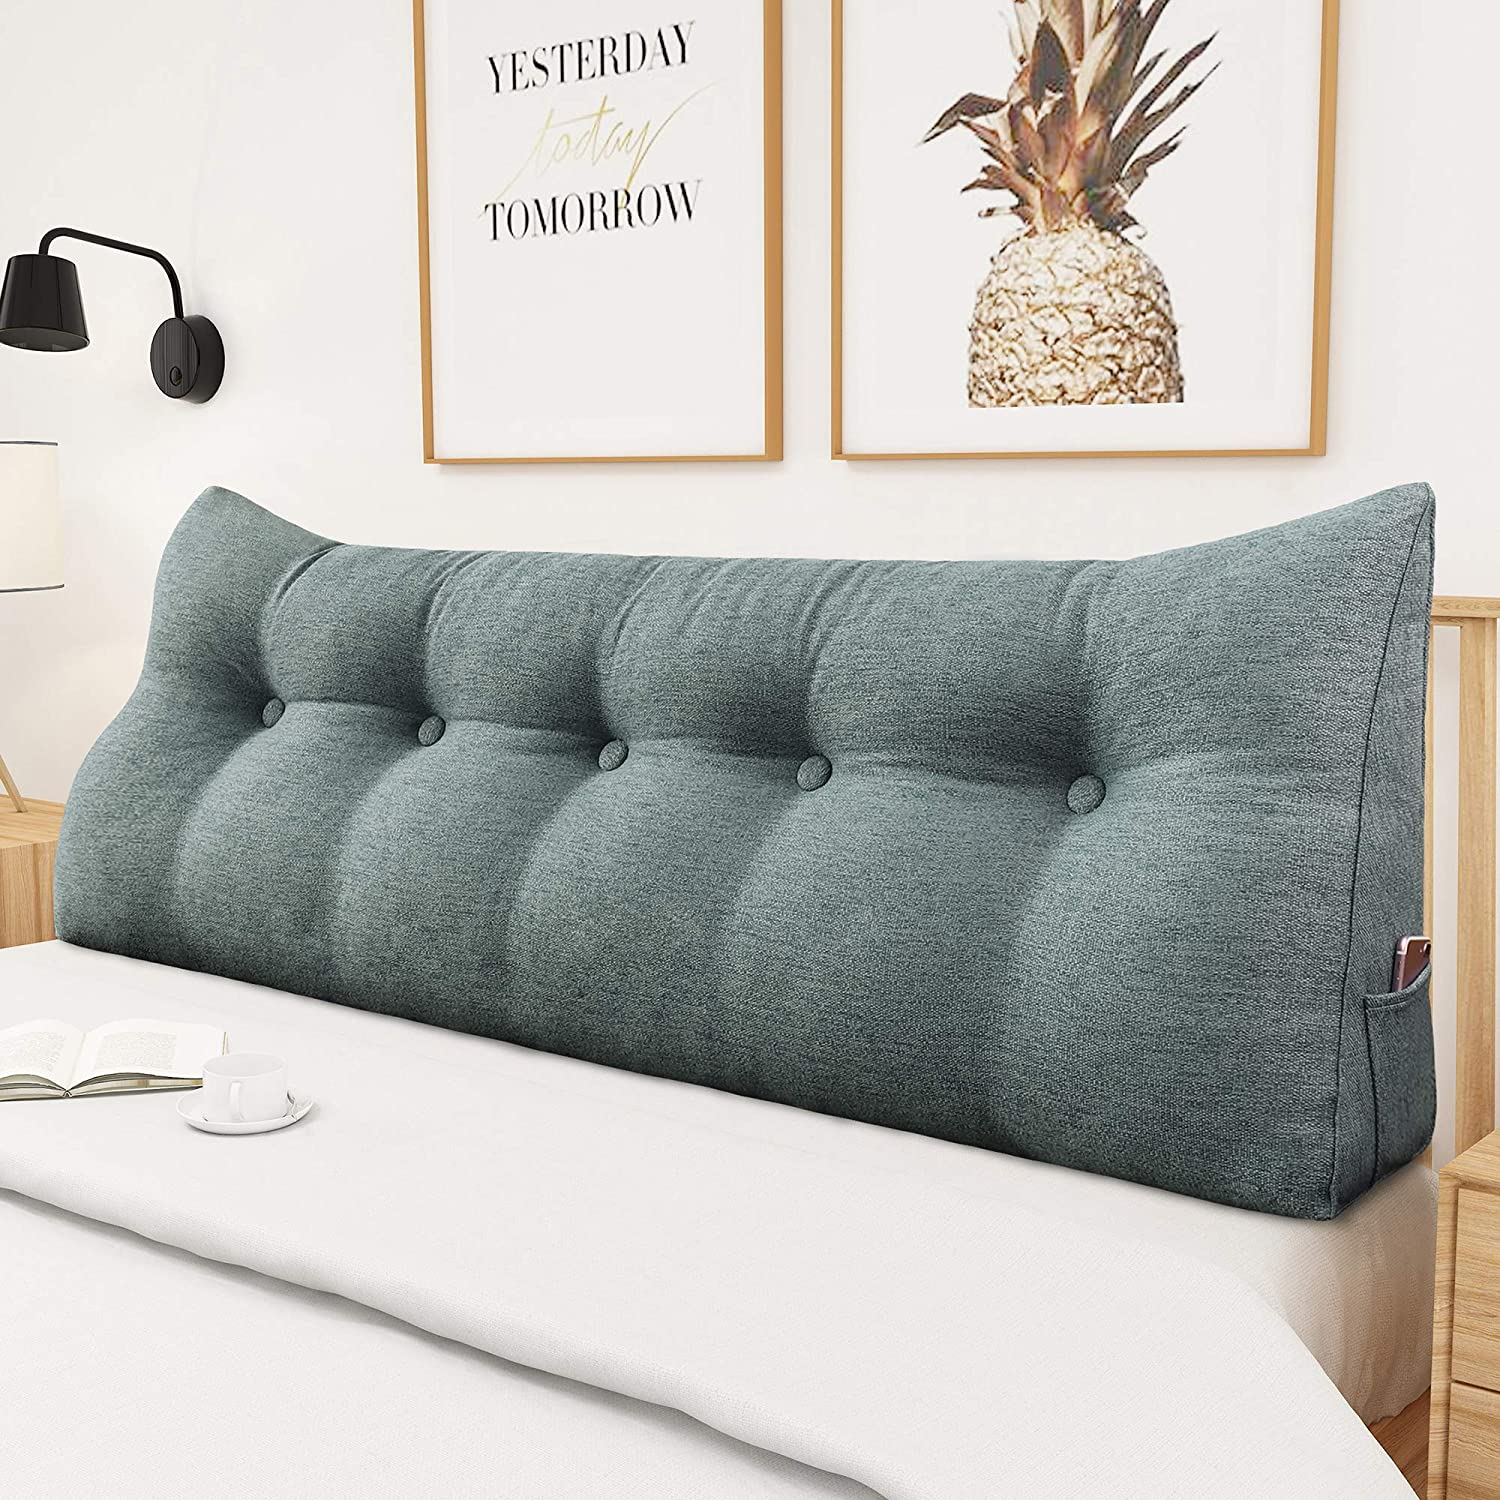 VERCART Headboard Reading Pillow UpholsteWhite Wedge Cushion Back Rest Positioning Pillow Support Bolster Backrest Cushion Lumbar Pad for Bed and Couch White 17.7